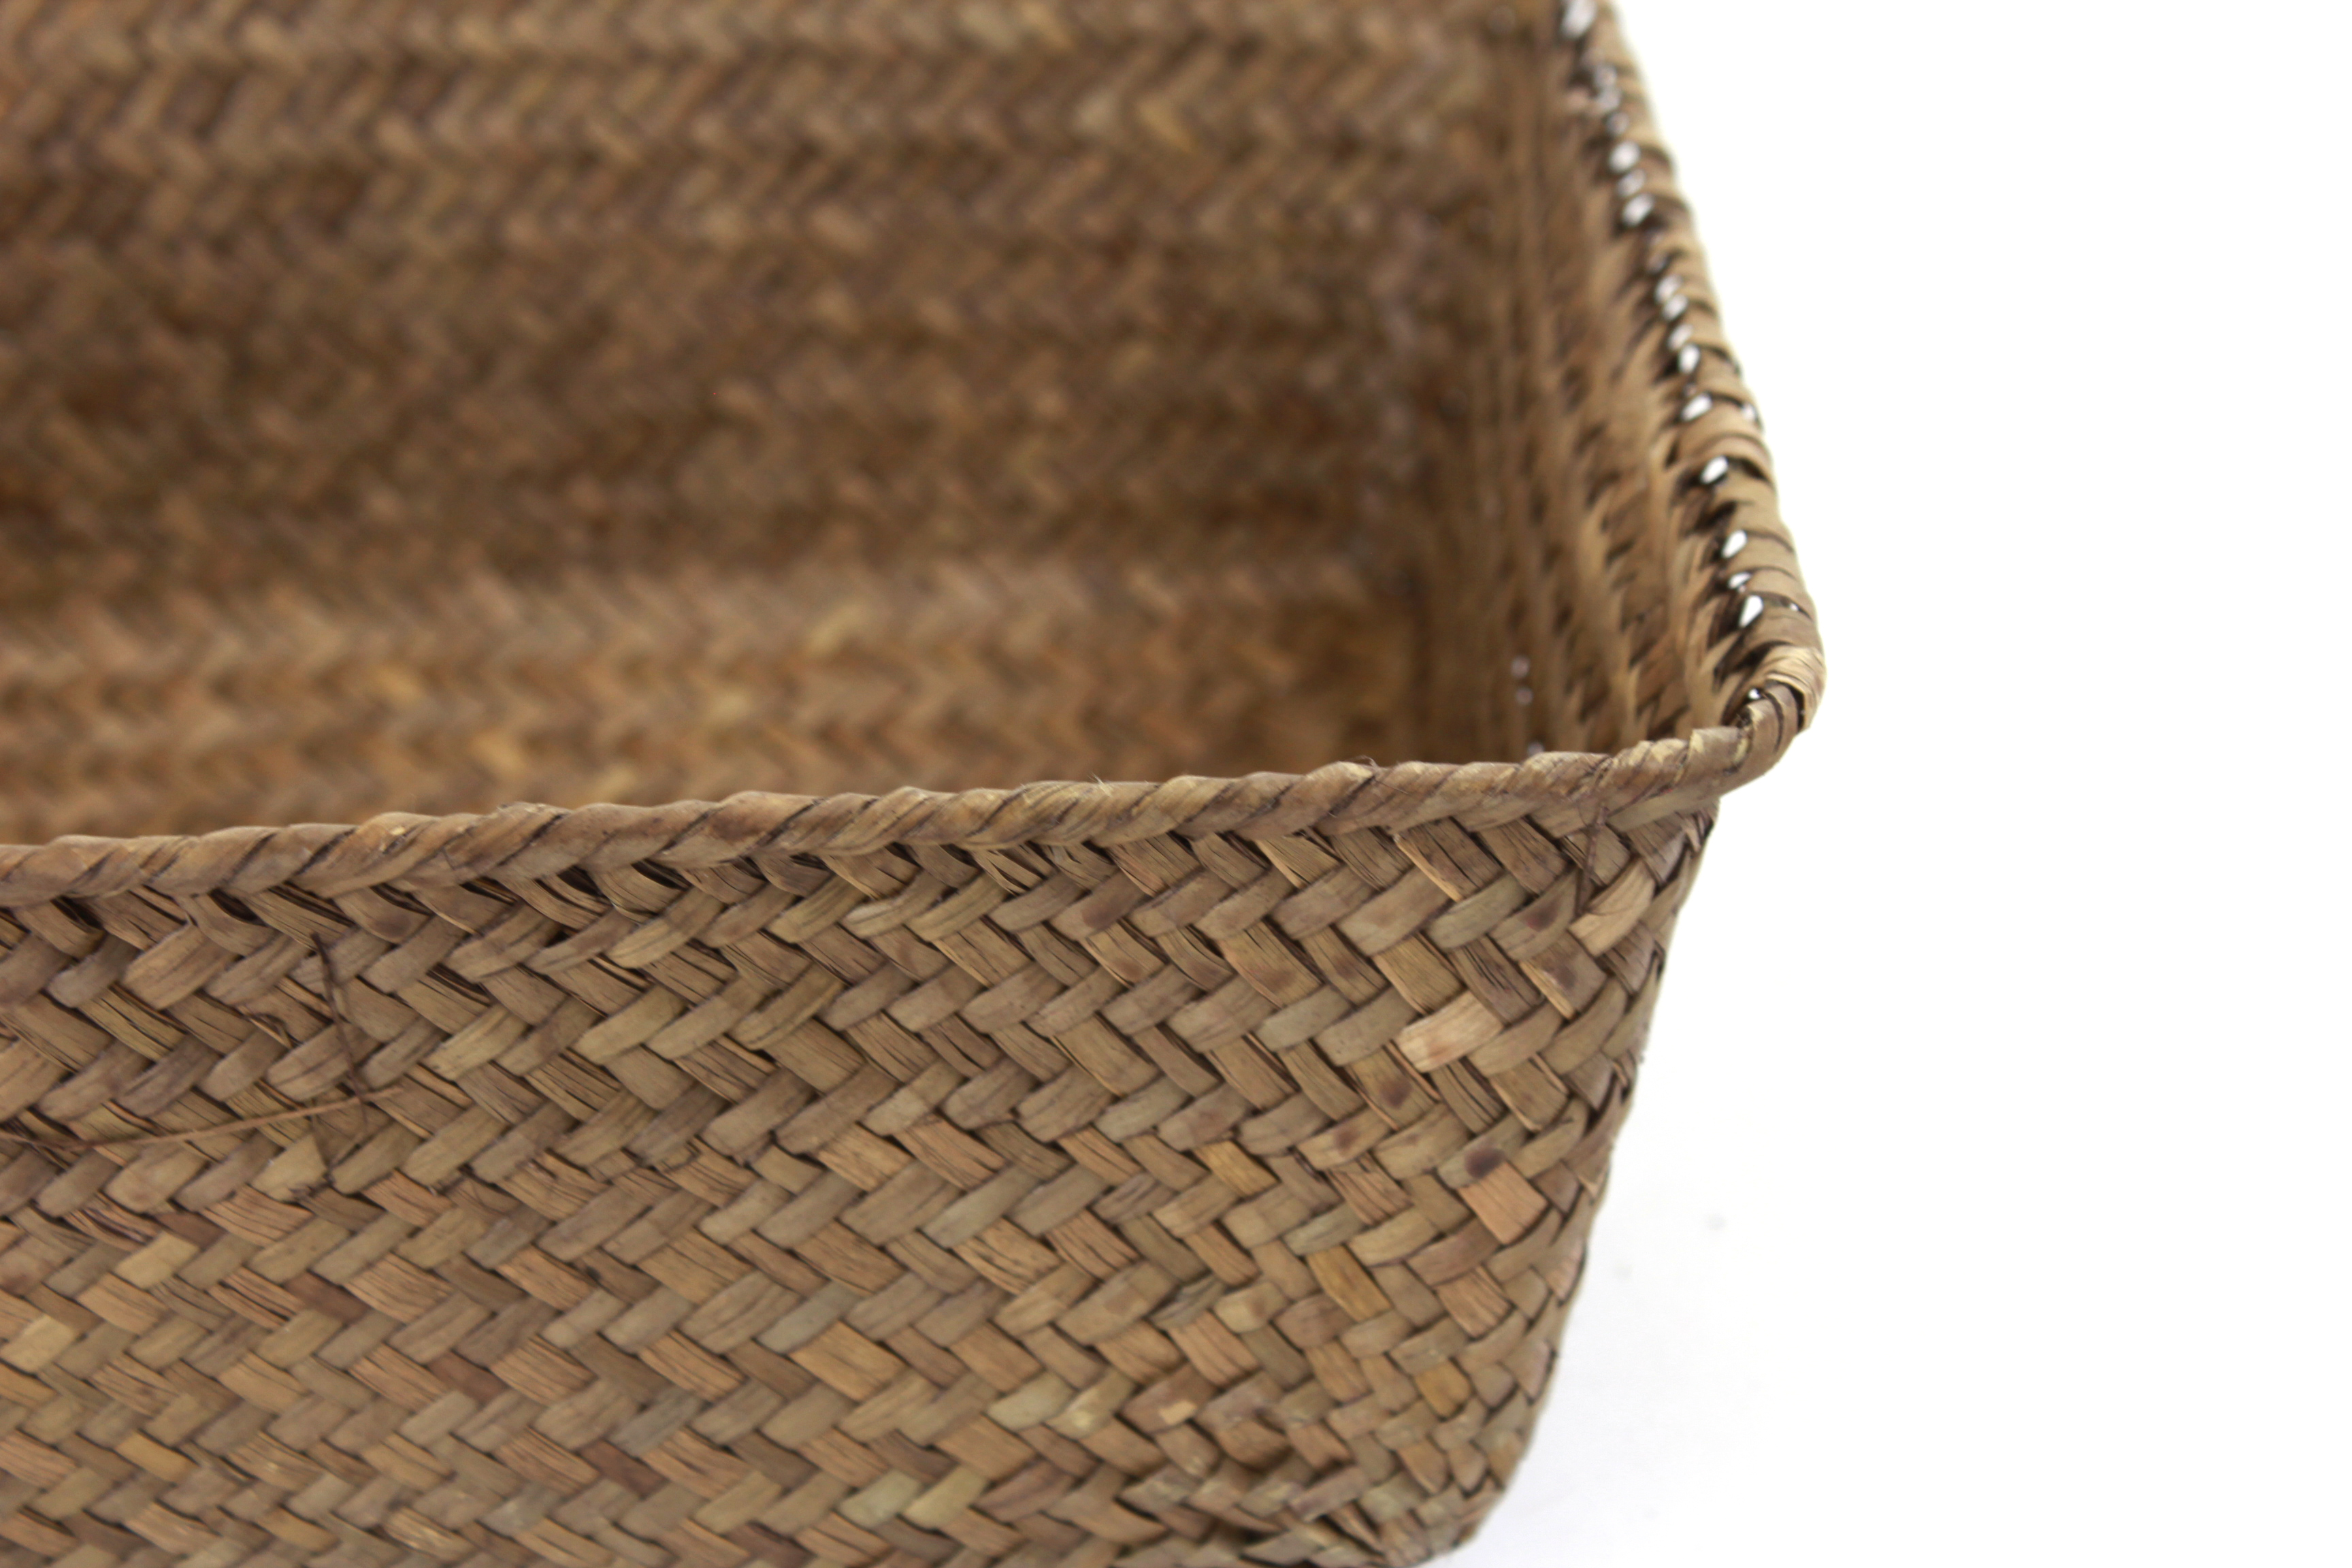 Dark Brown Rectangular Basket 13'' x 9'' x 4'' close